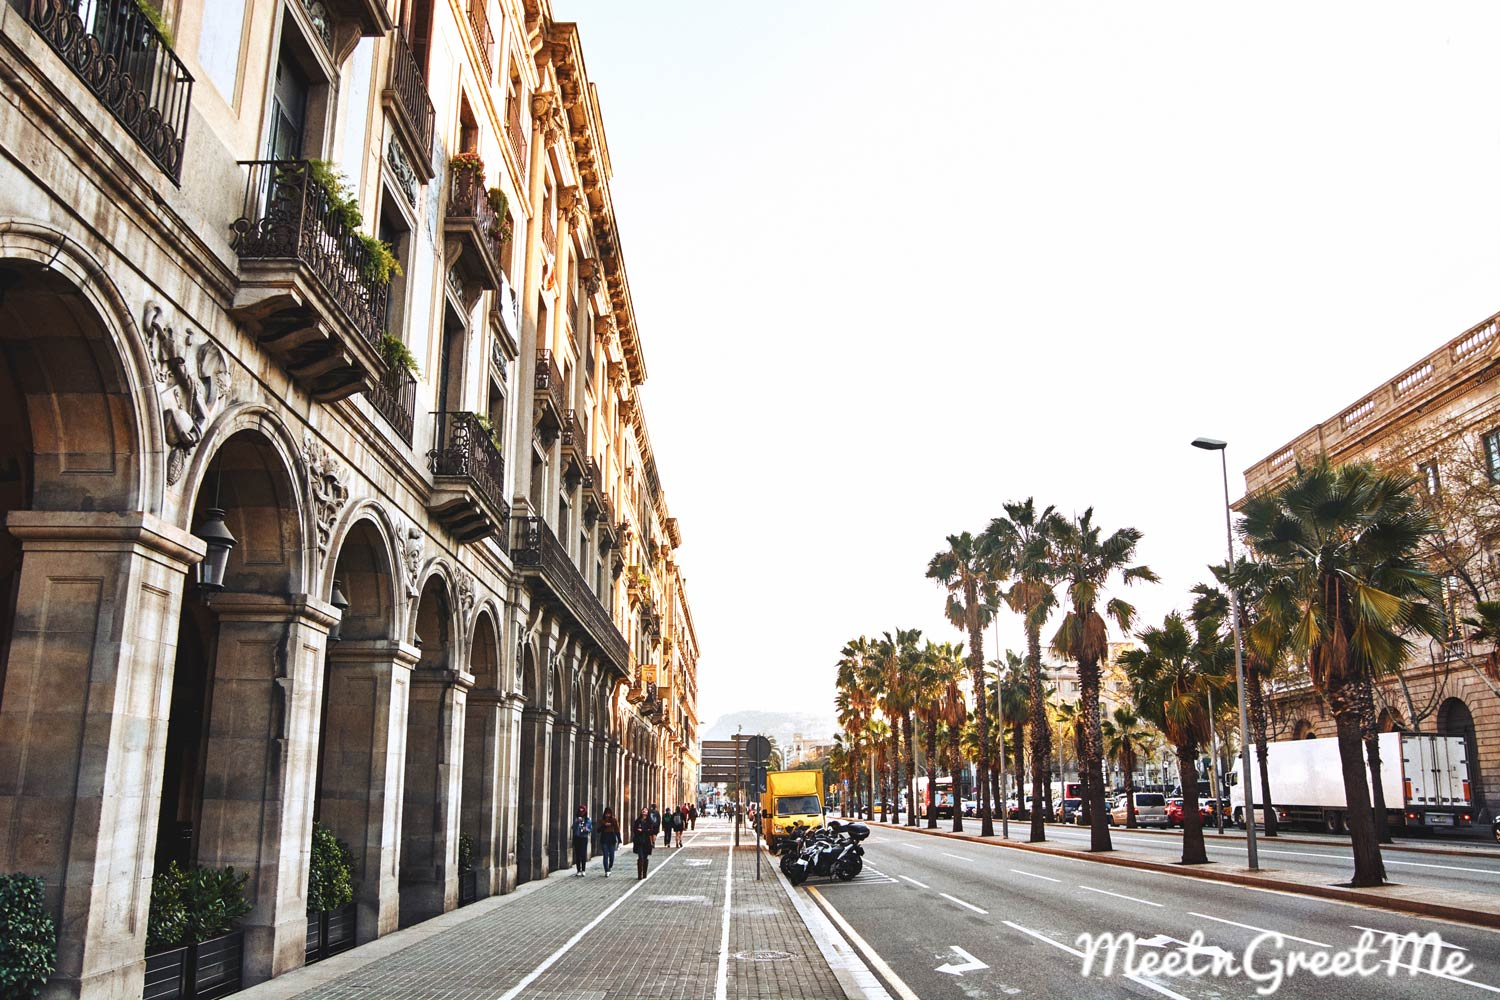 barcelona-with-locals-from-meetngreetme